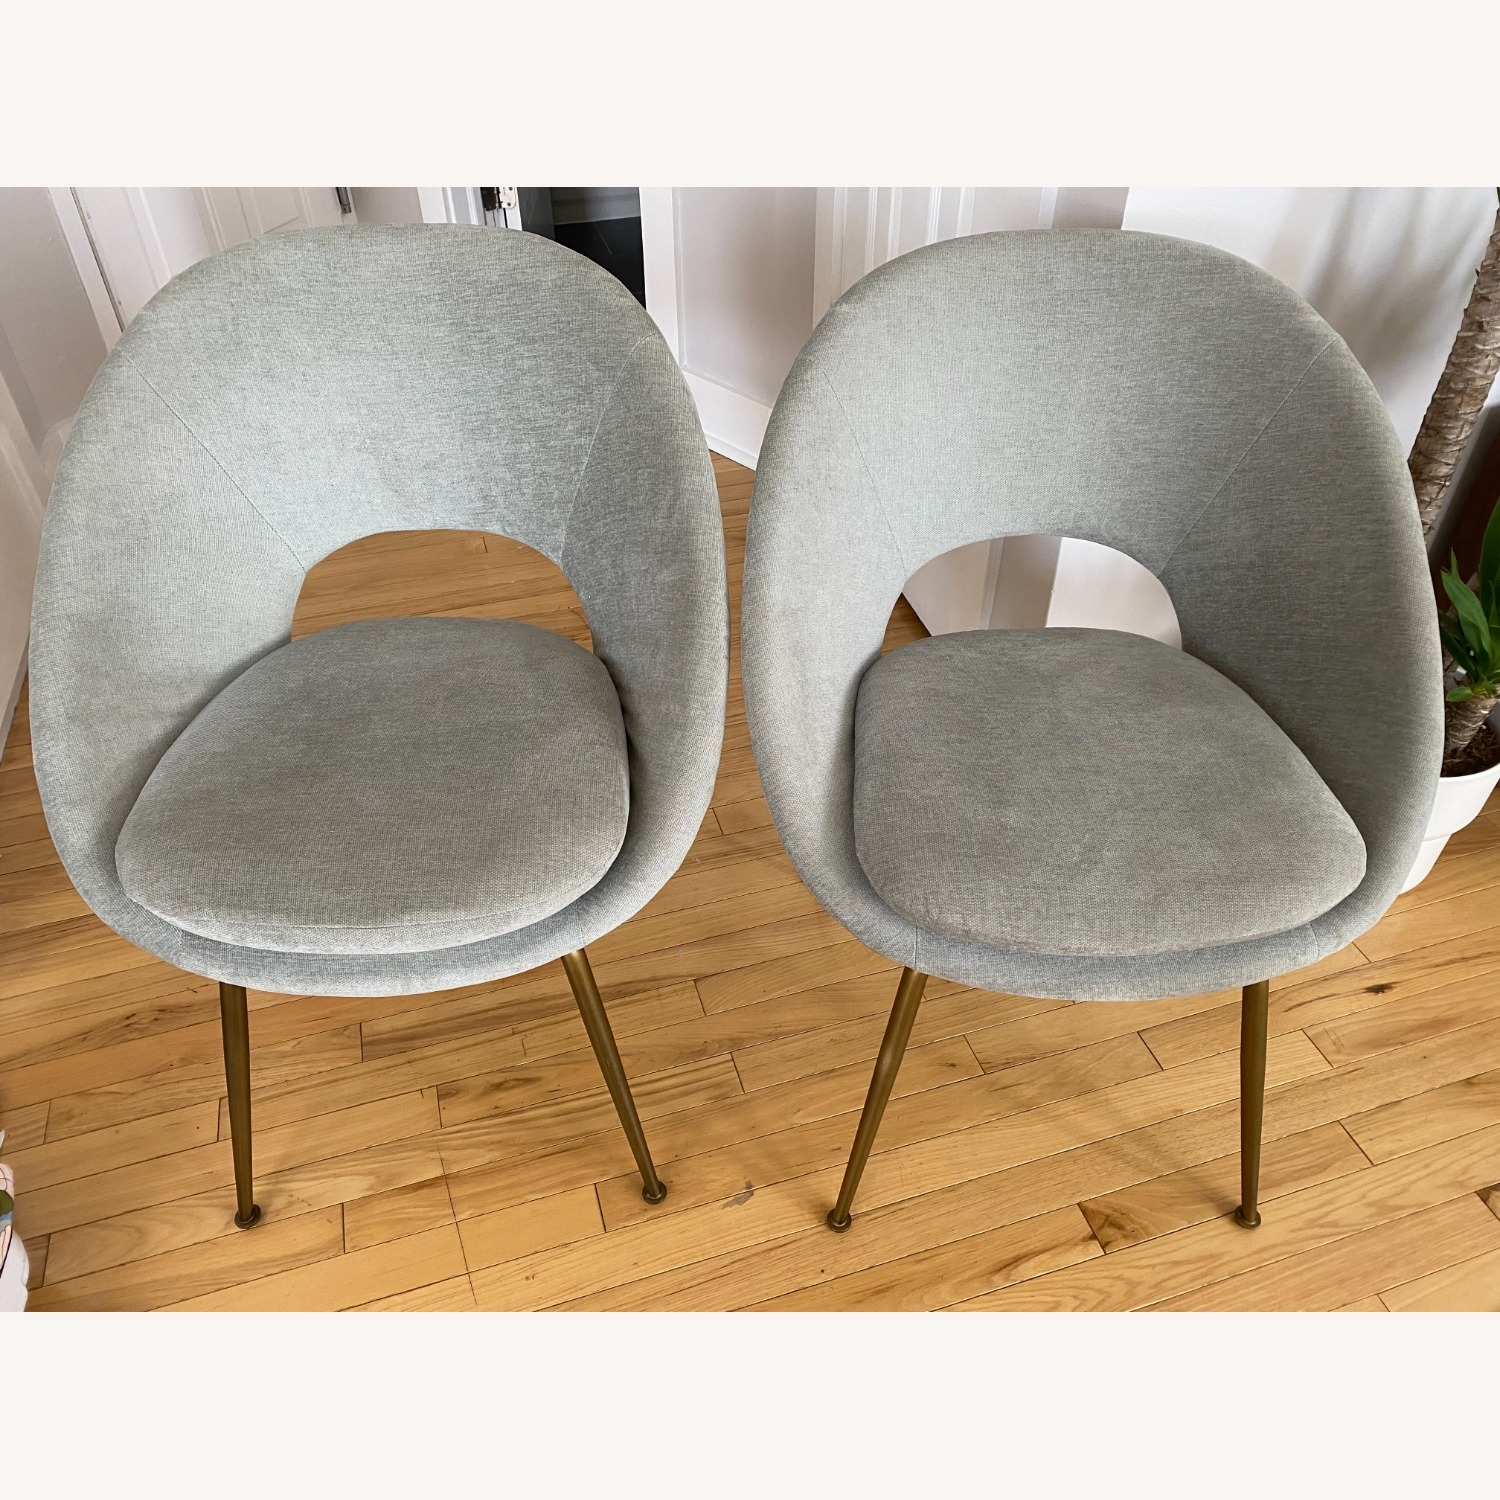 West Elm Orb Dining Chairs - image-9